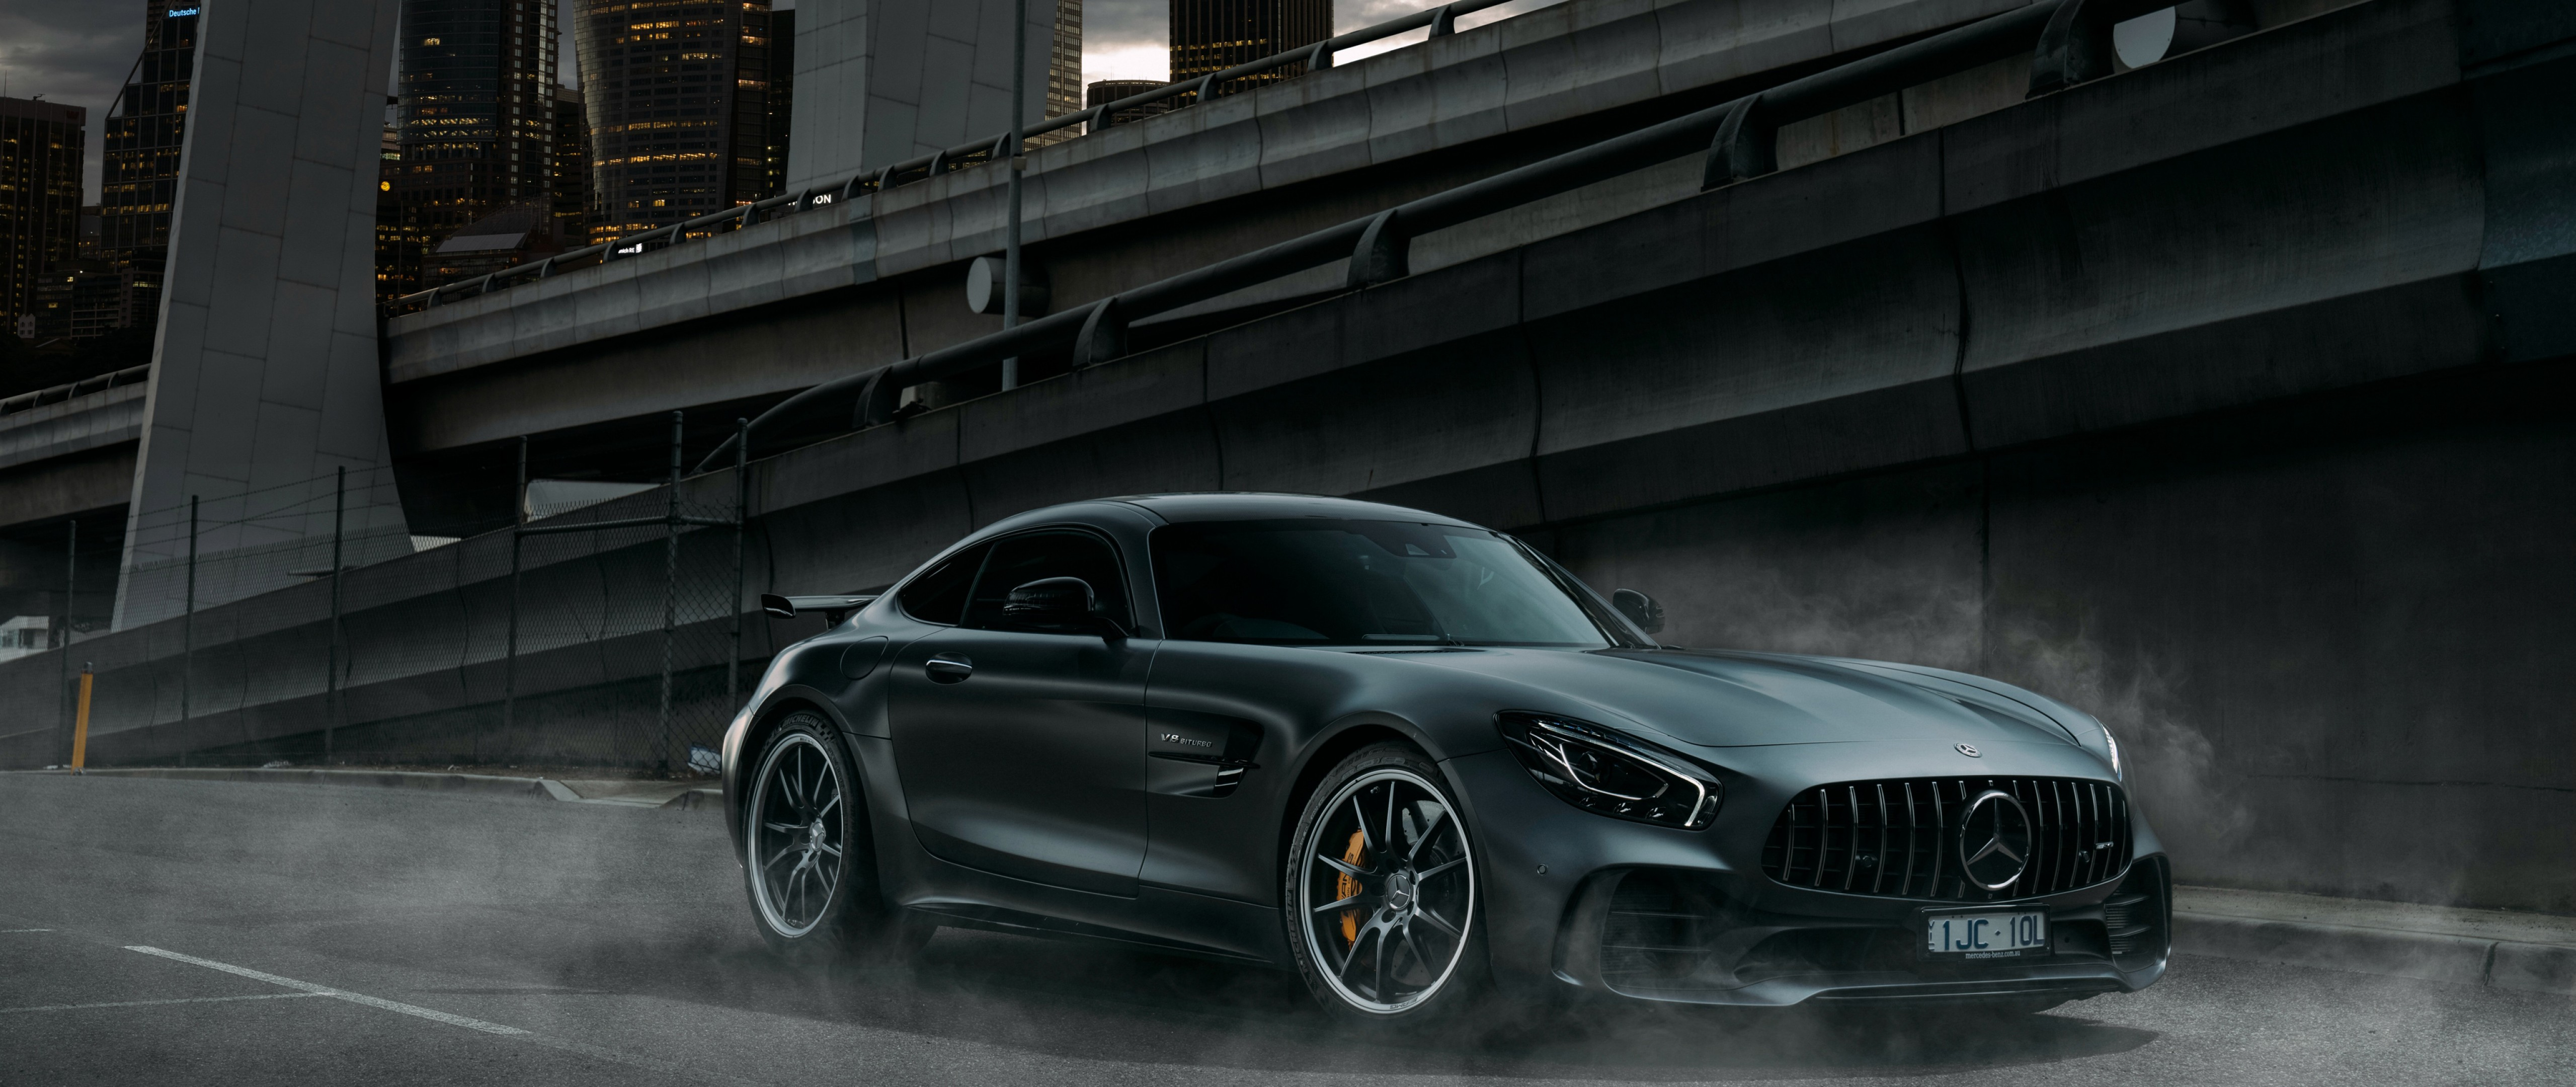 Free Download Mercedes Amg Gt And Benz Car Wallpaper For Desktop And Mobiles 4k Ultra Hd Wide Tv Hd Wallpaper Wallpapers Net